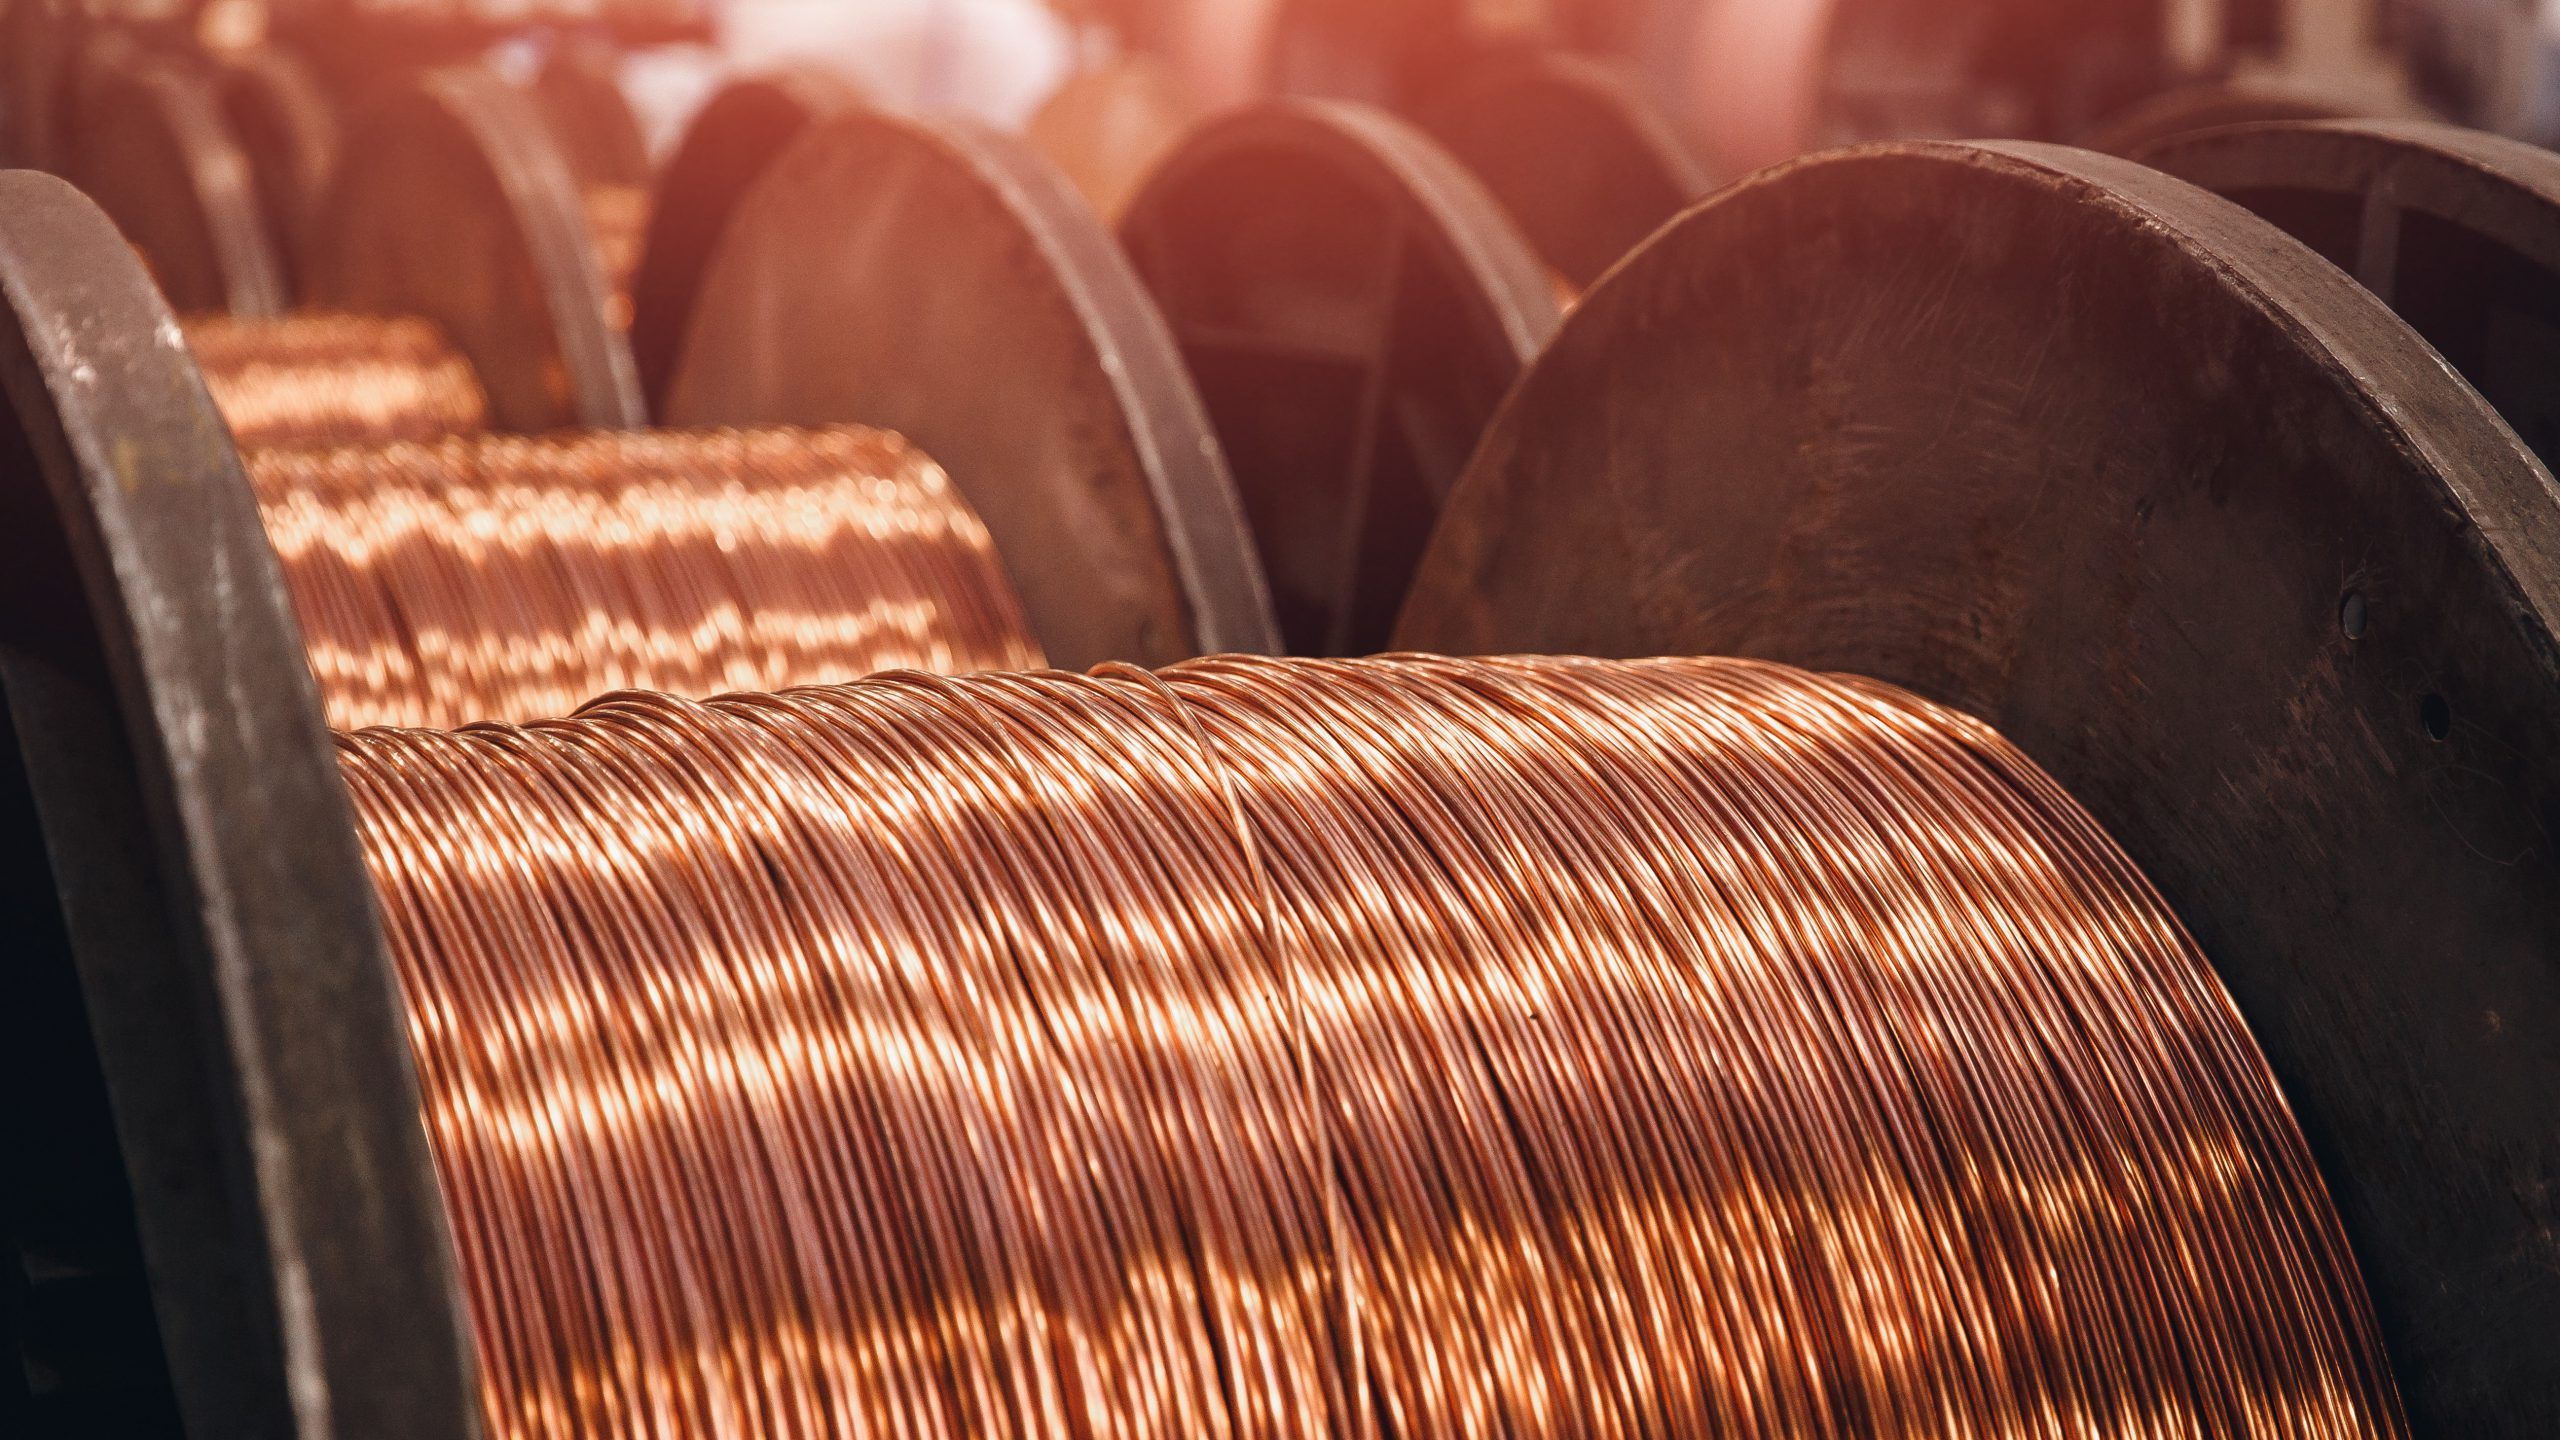 Global Copper Market to Remain Under-Supplied in Next Few Years